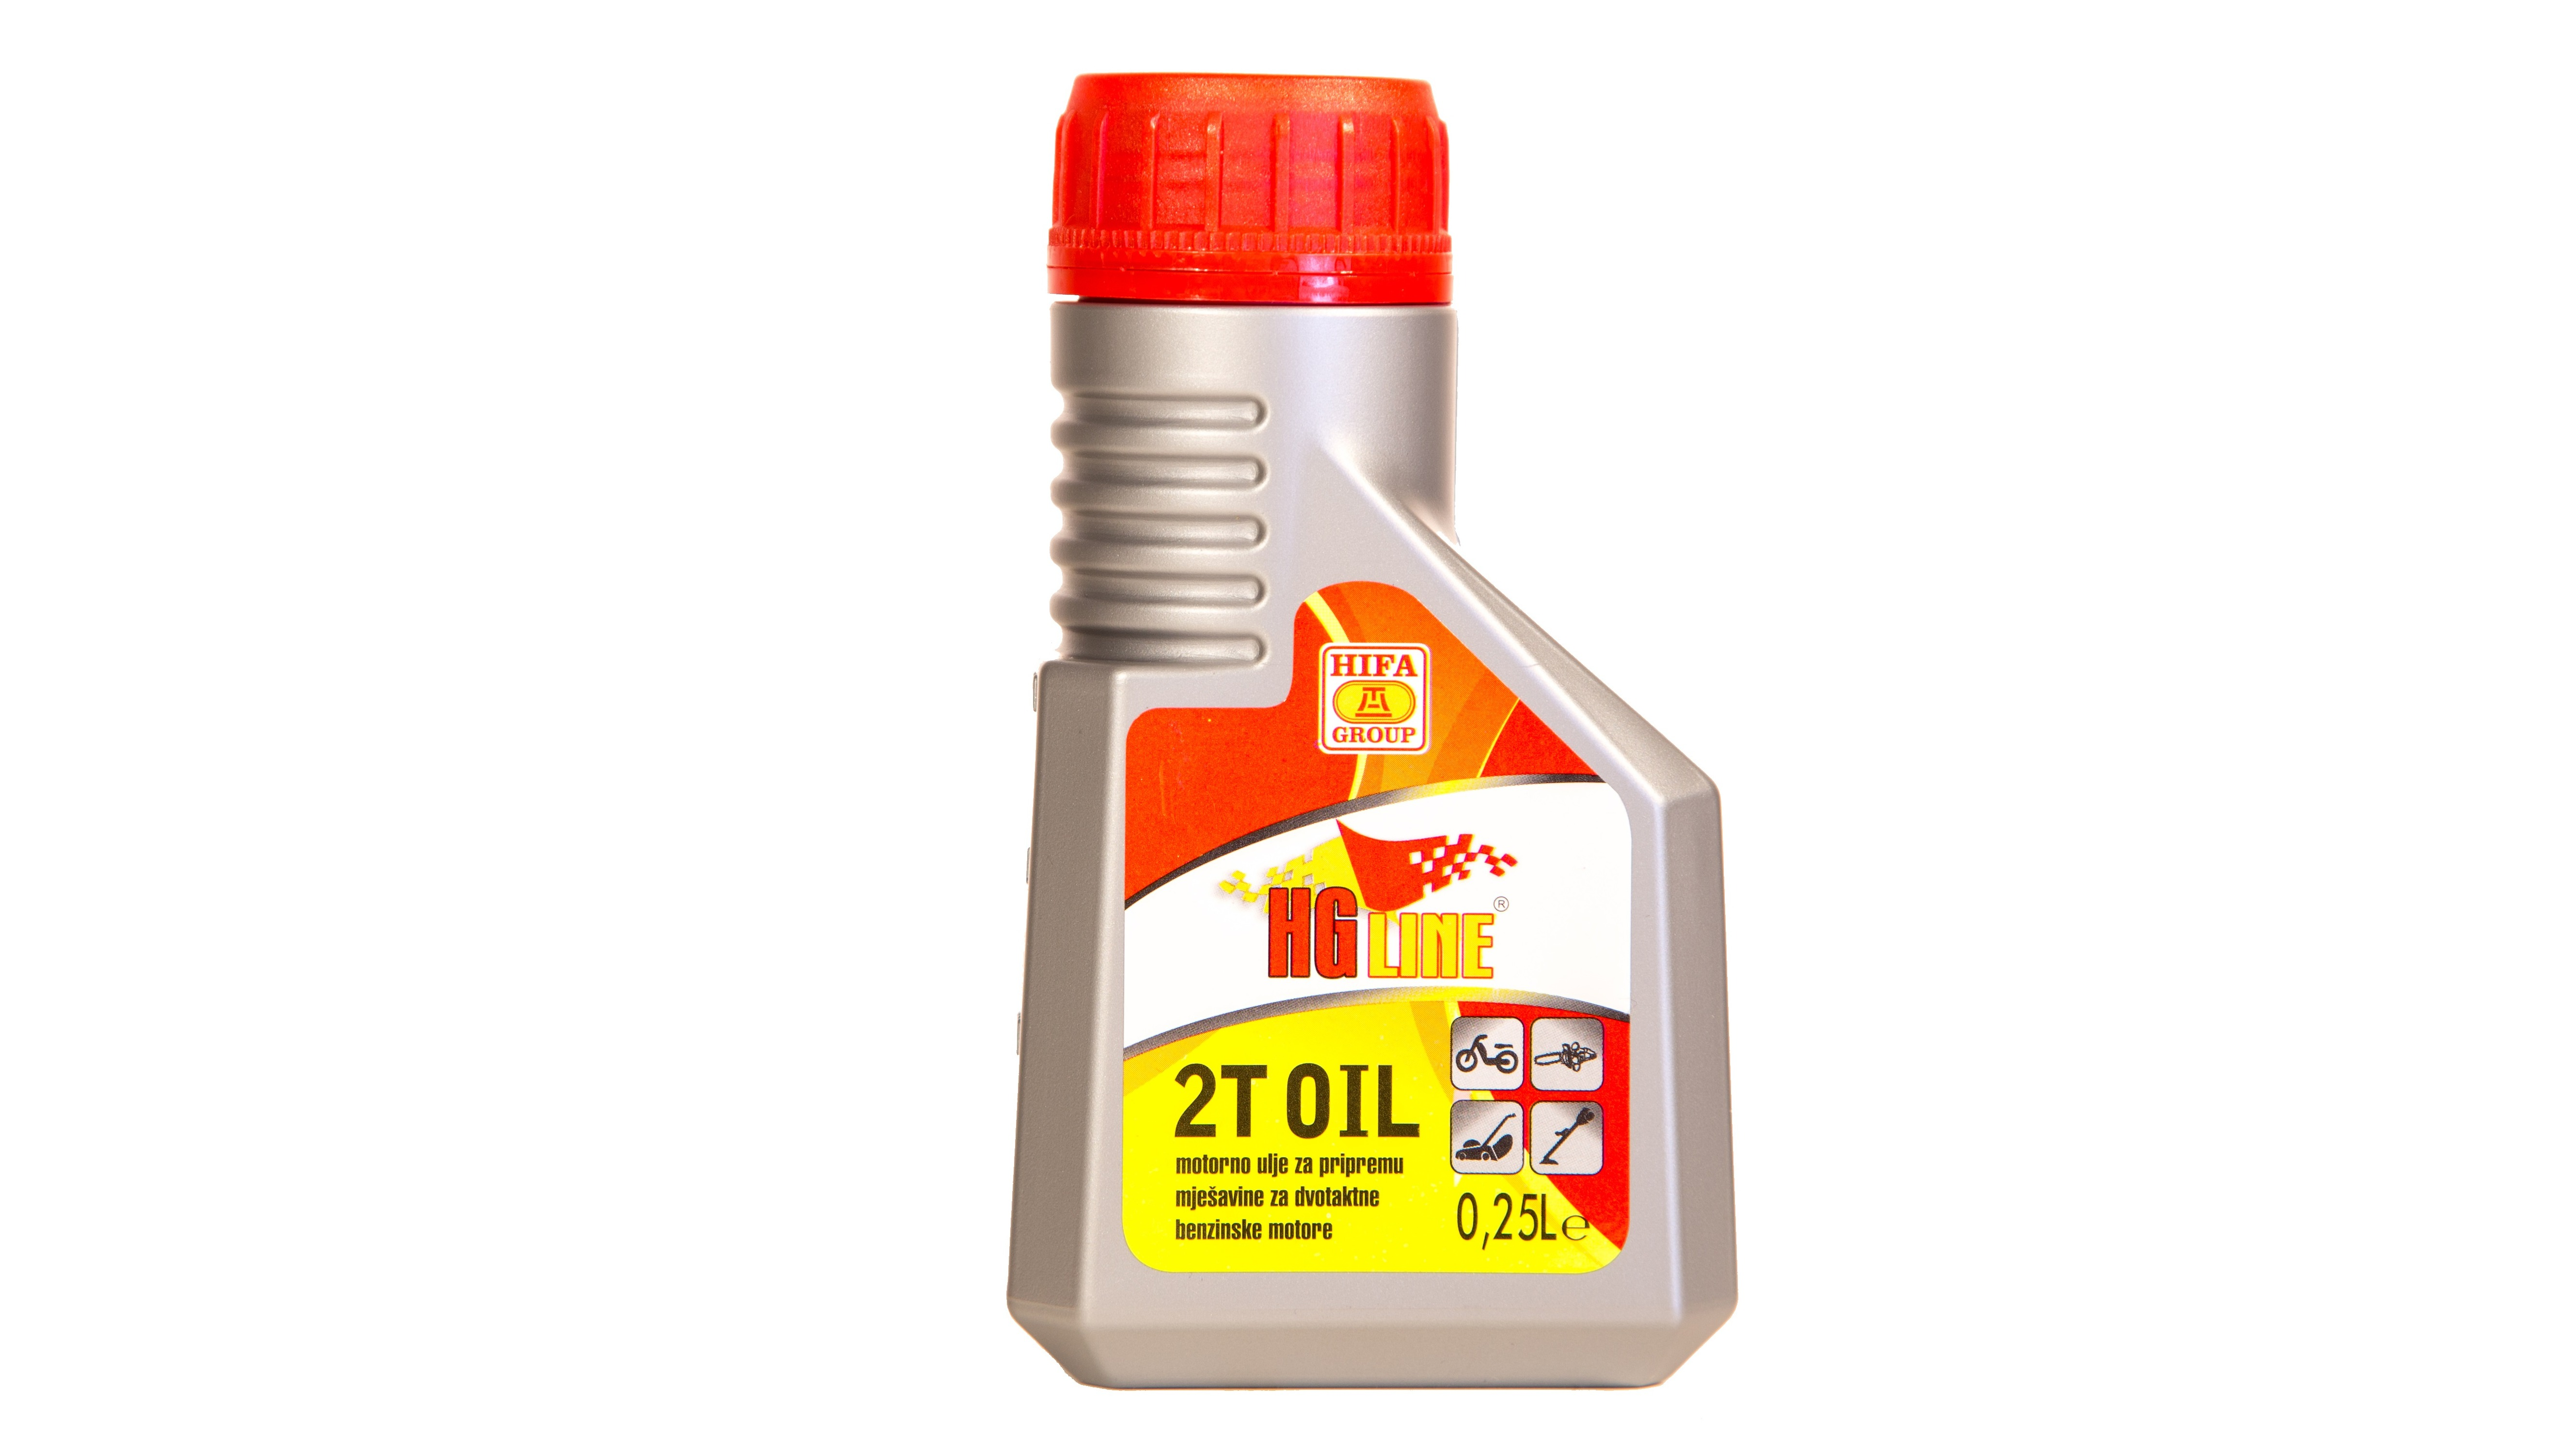 HGline 2T Oil - motor oil for two-stroke engines